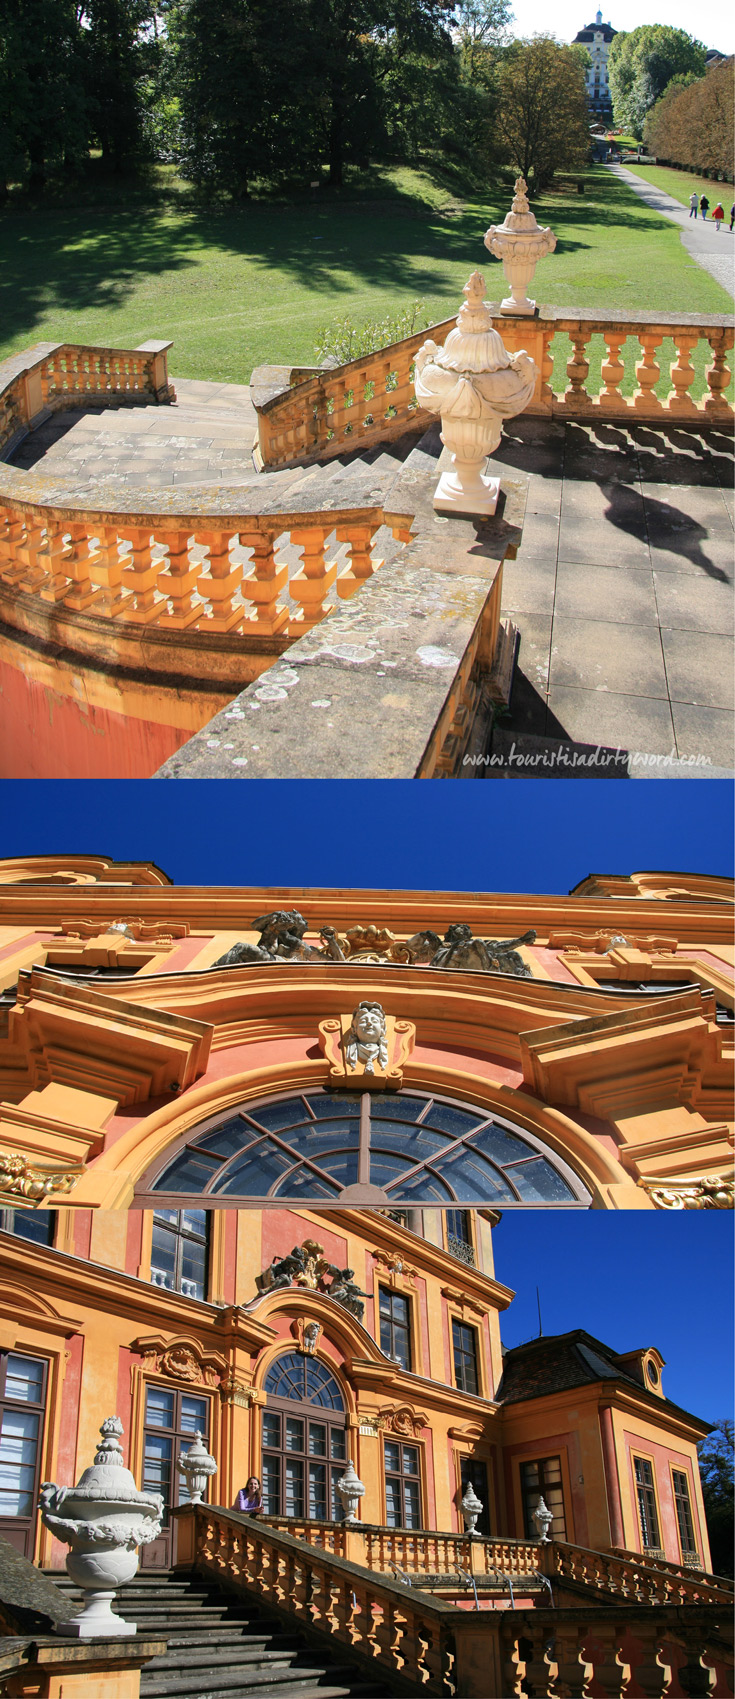 Exterior views of the Southern Facade of Ludwigsburg's Schloss Favorite | Baroque Architecture